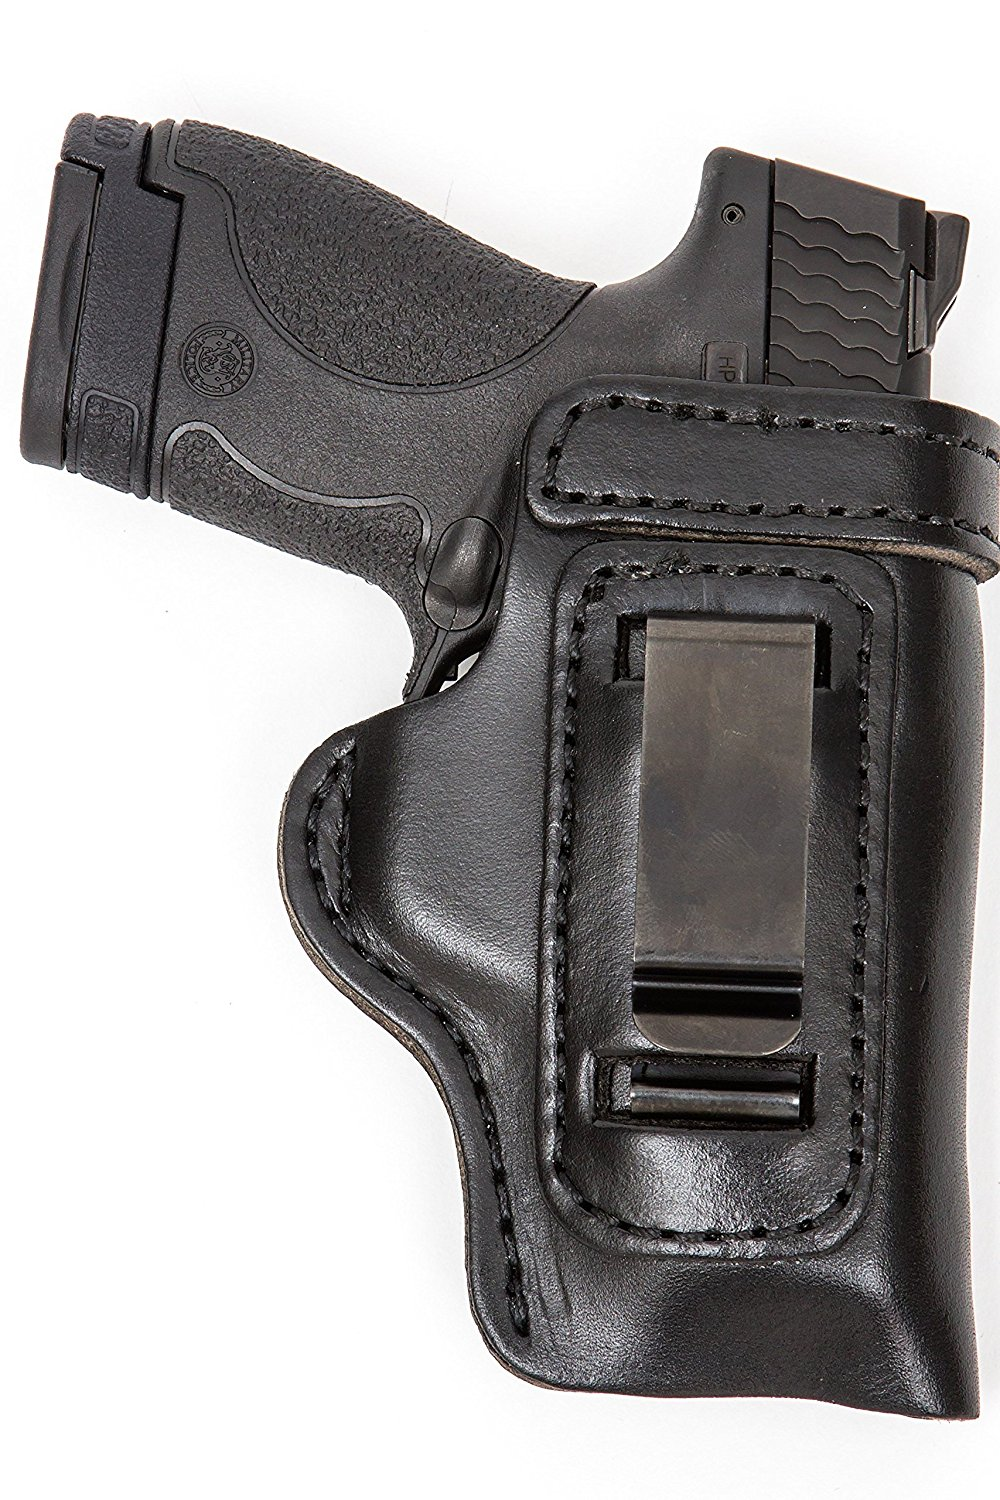 The Holster Store: Leather Gun Holster For Taurus 709 740 IWB Inside The Waistband RH Right Hand or LH Left Hand Black or Brown HD